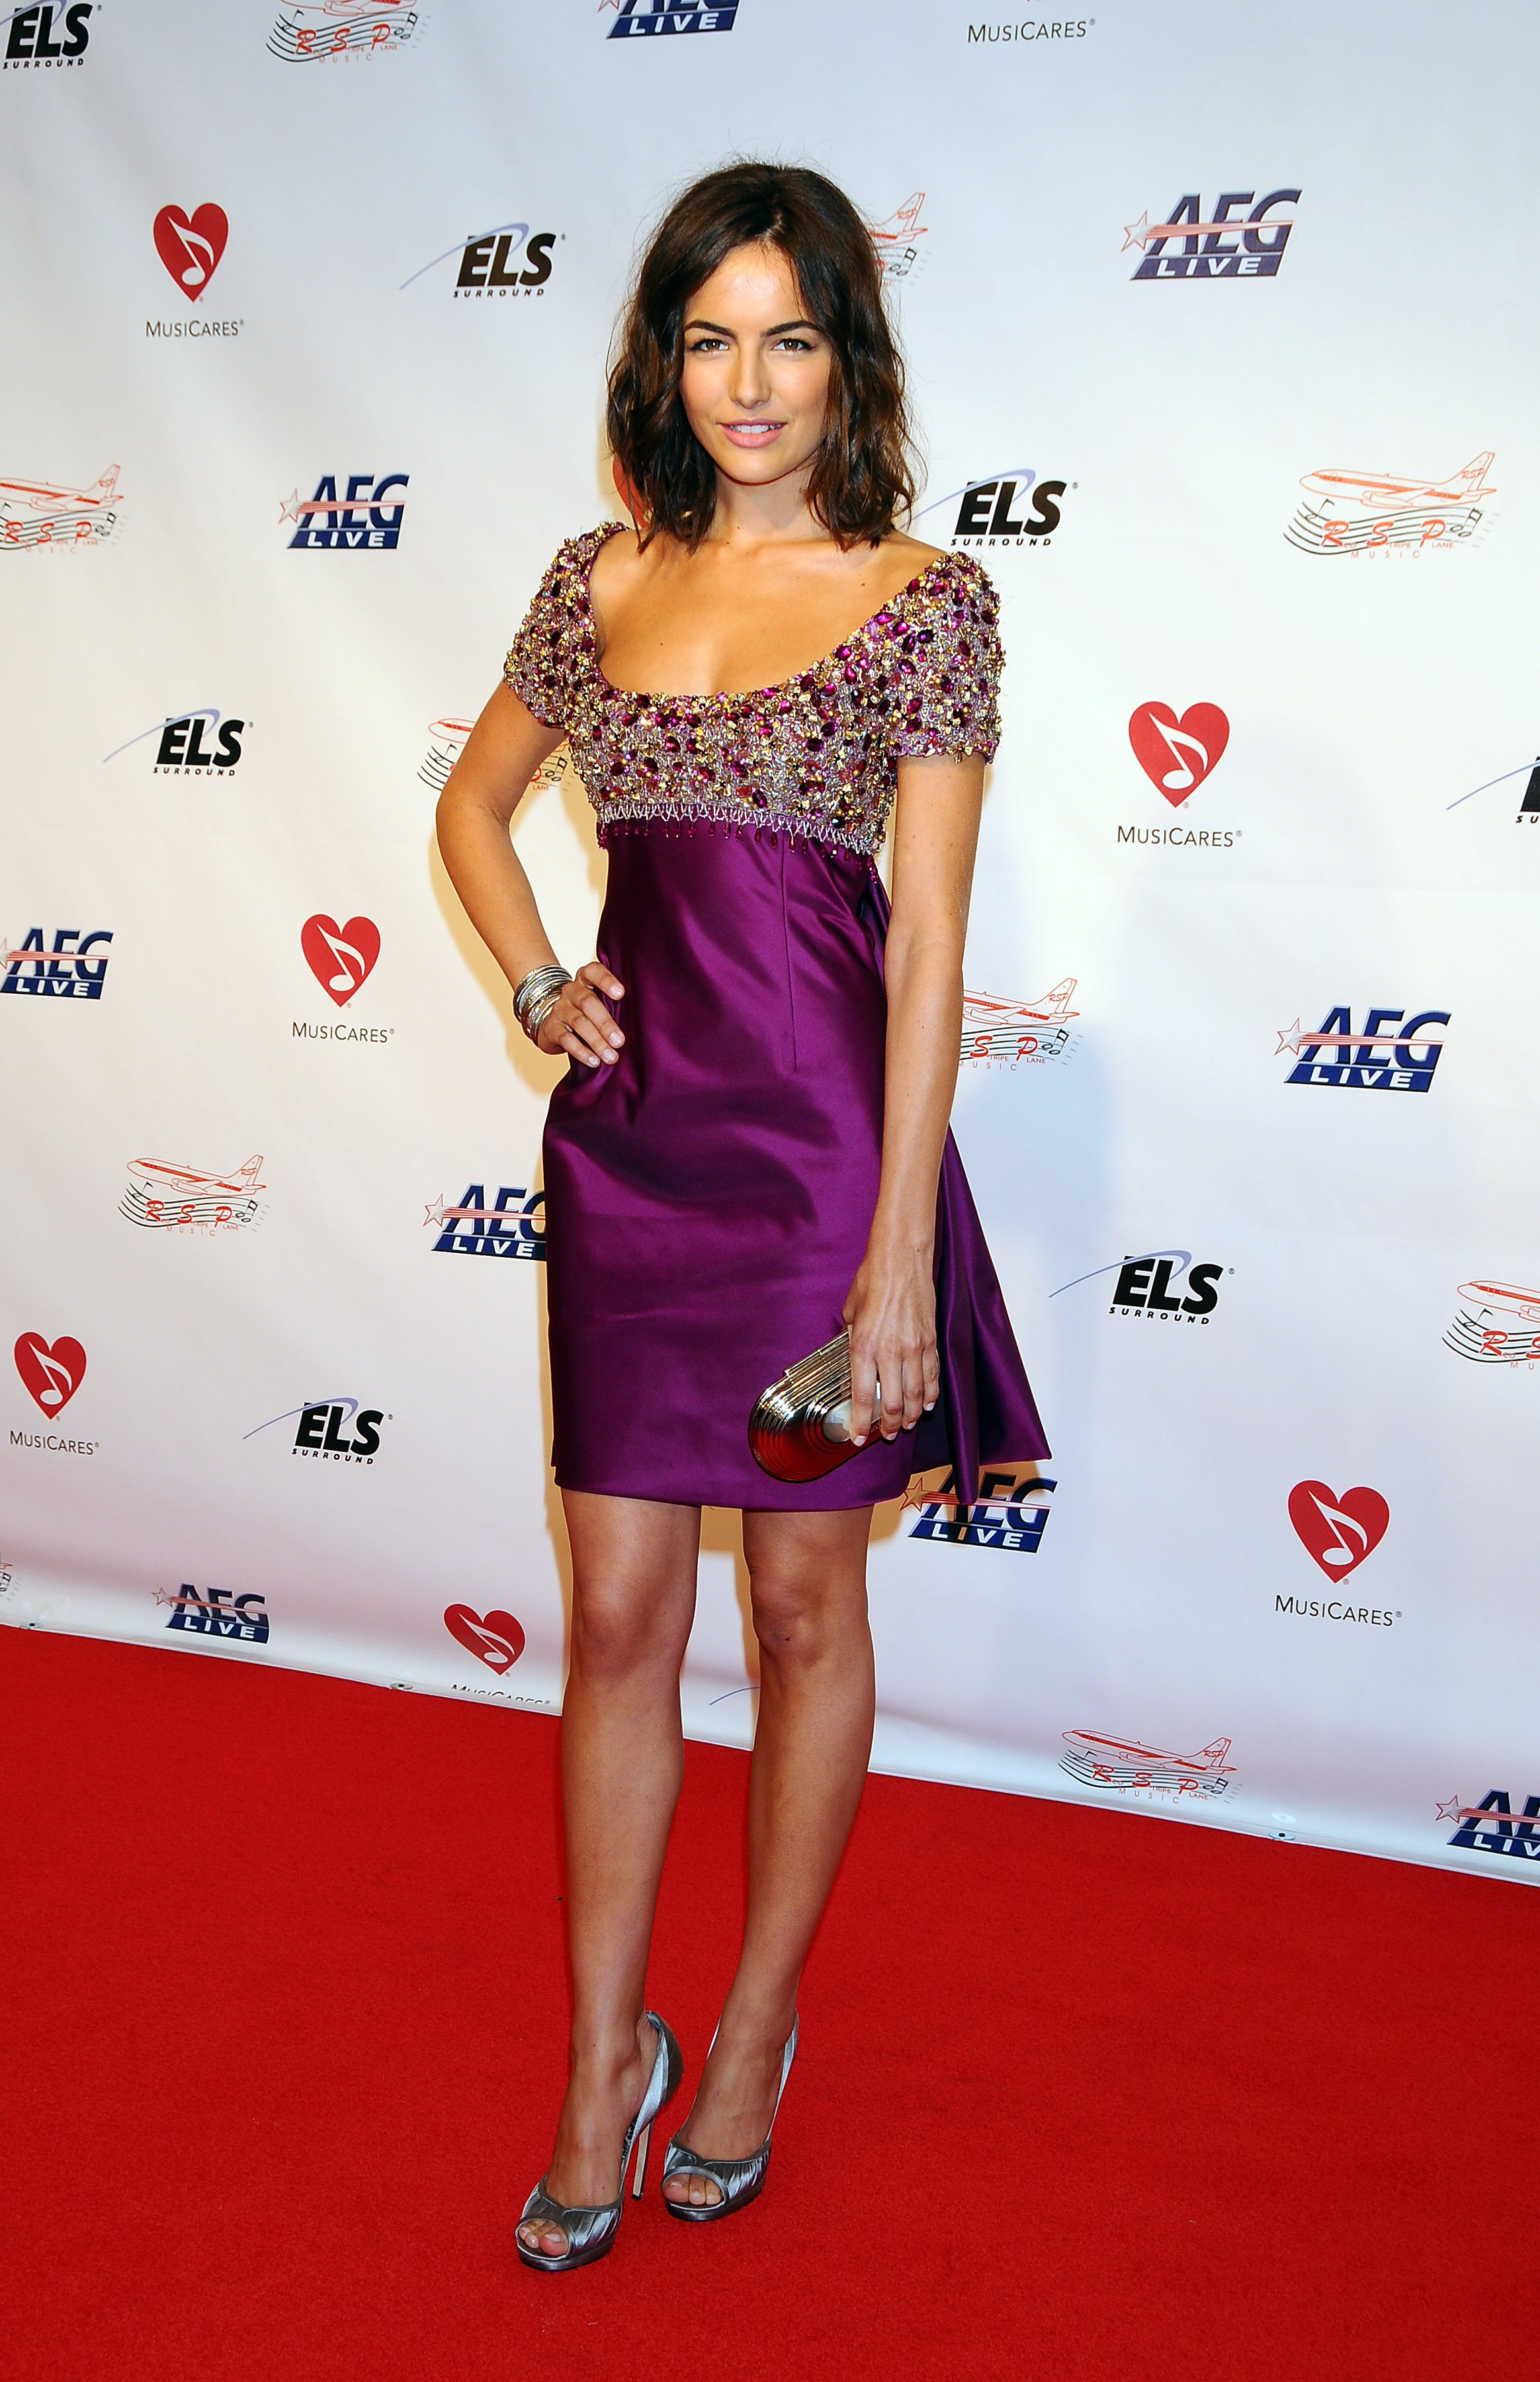 07375_Celebutopia-Camilla_Belle_arrives_at_the_2009_MusiCares_Person_Of_The_Year_Gala-04_122_544lo.JPG